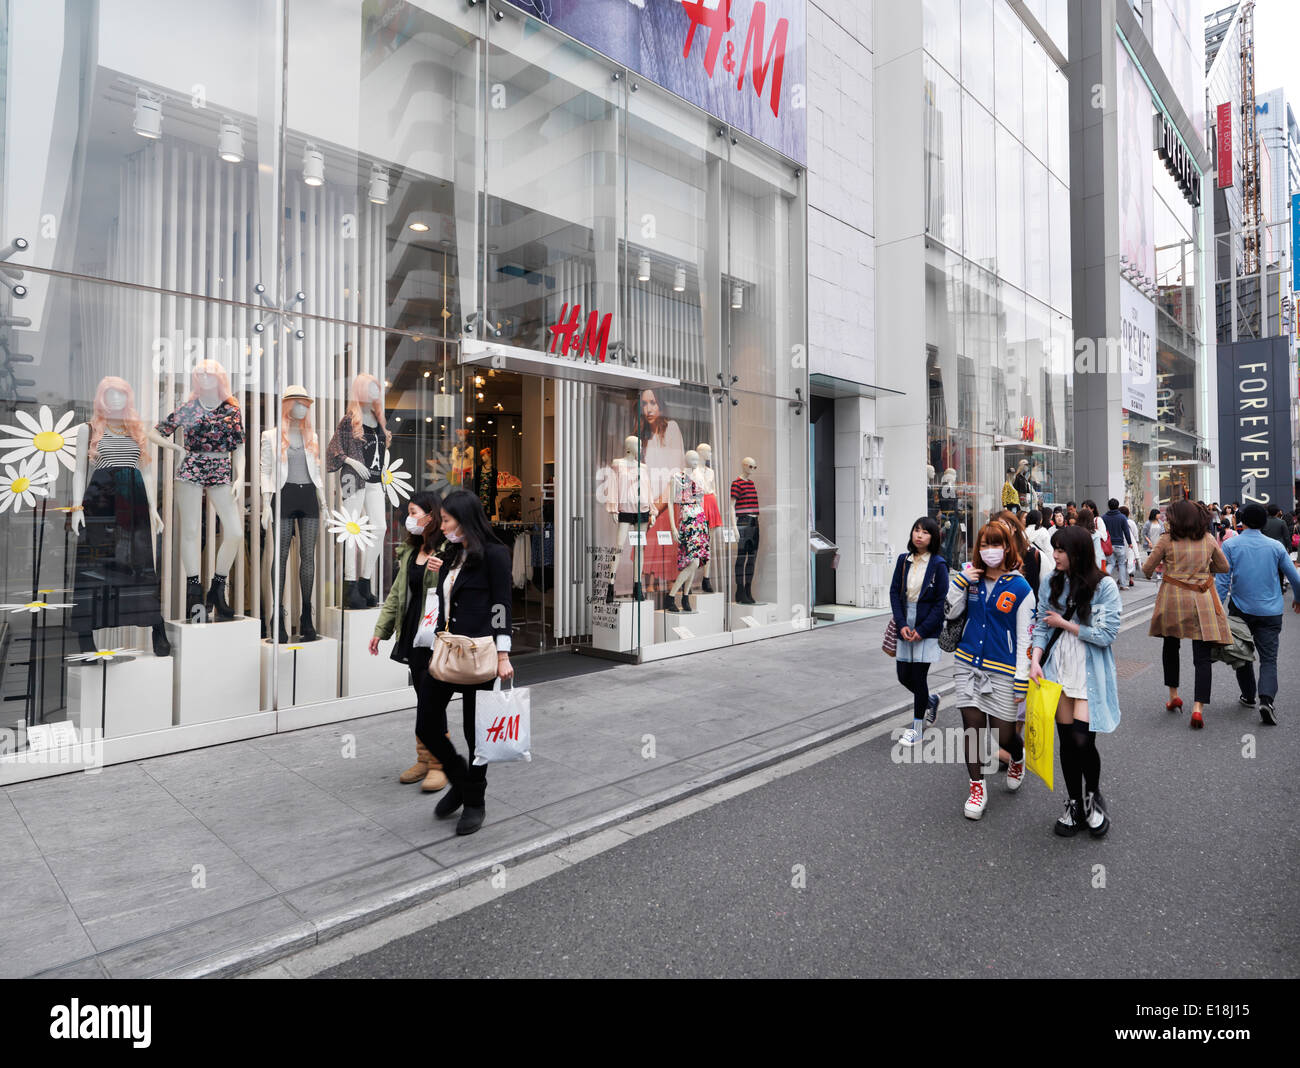 cb79f5e5d6e Young people walking on streets in one of Tokyo's fashion districts. HM and  Forever 21